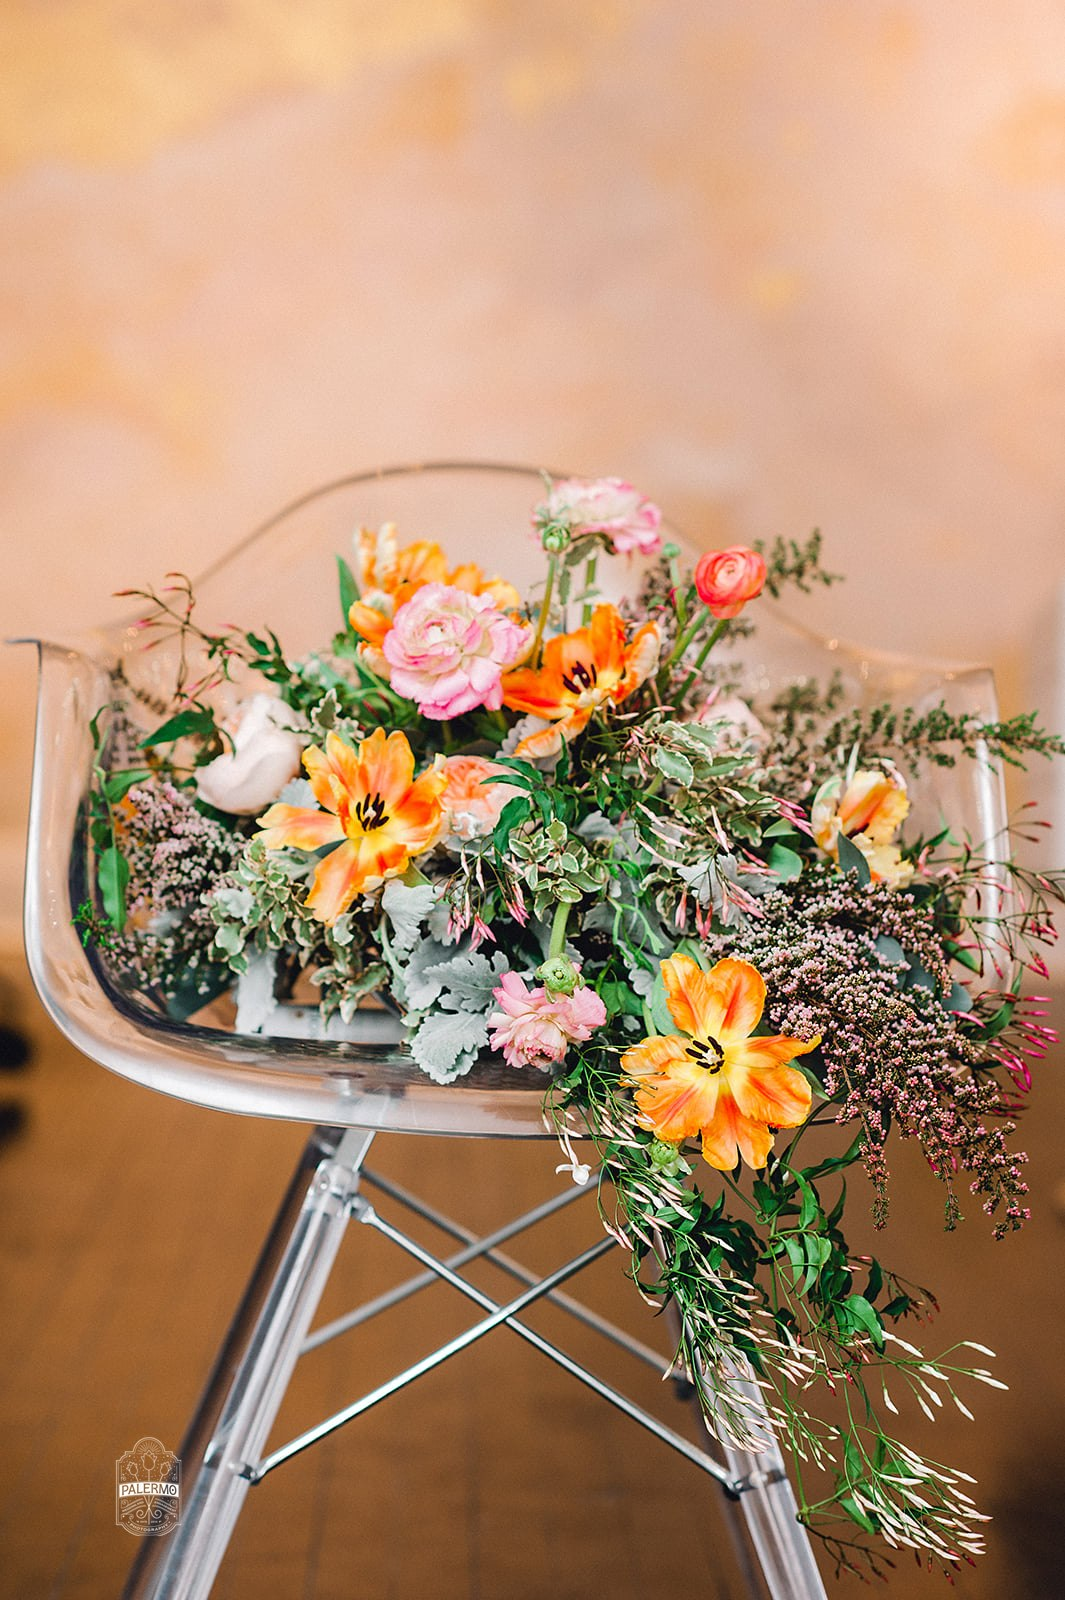 Blowouts, Bubbly & Brunch Spa Day Bridal Shower Inspiration at Glow Blotique  (37).jpg